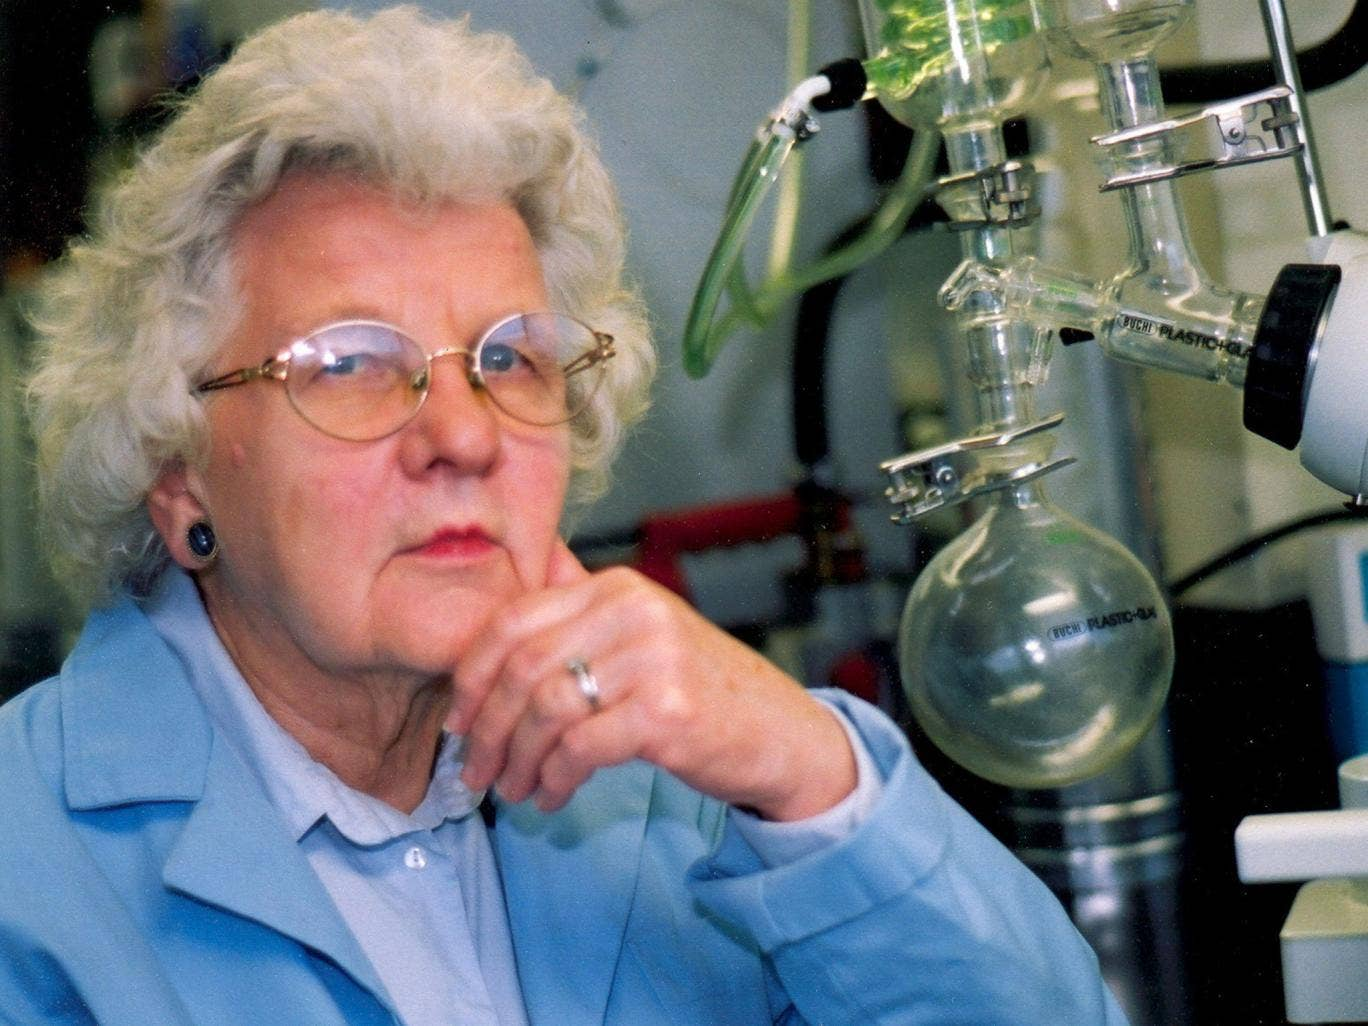 Ruth Benerito was a US Agriculture Department chemist